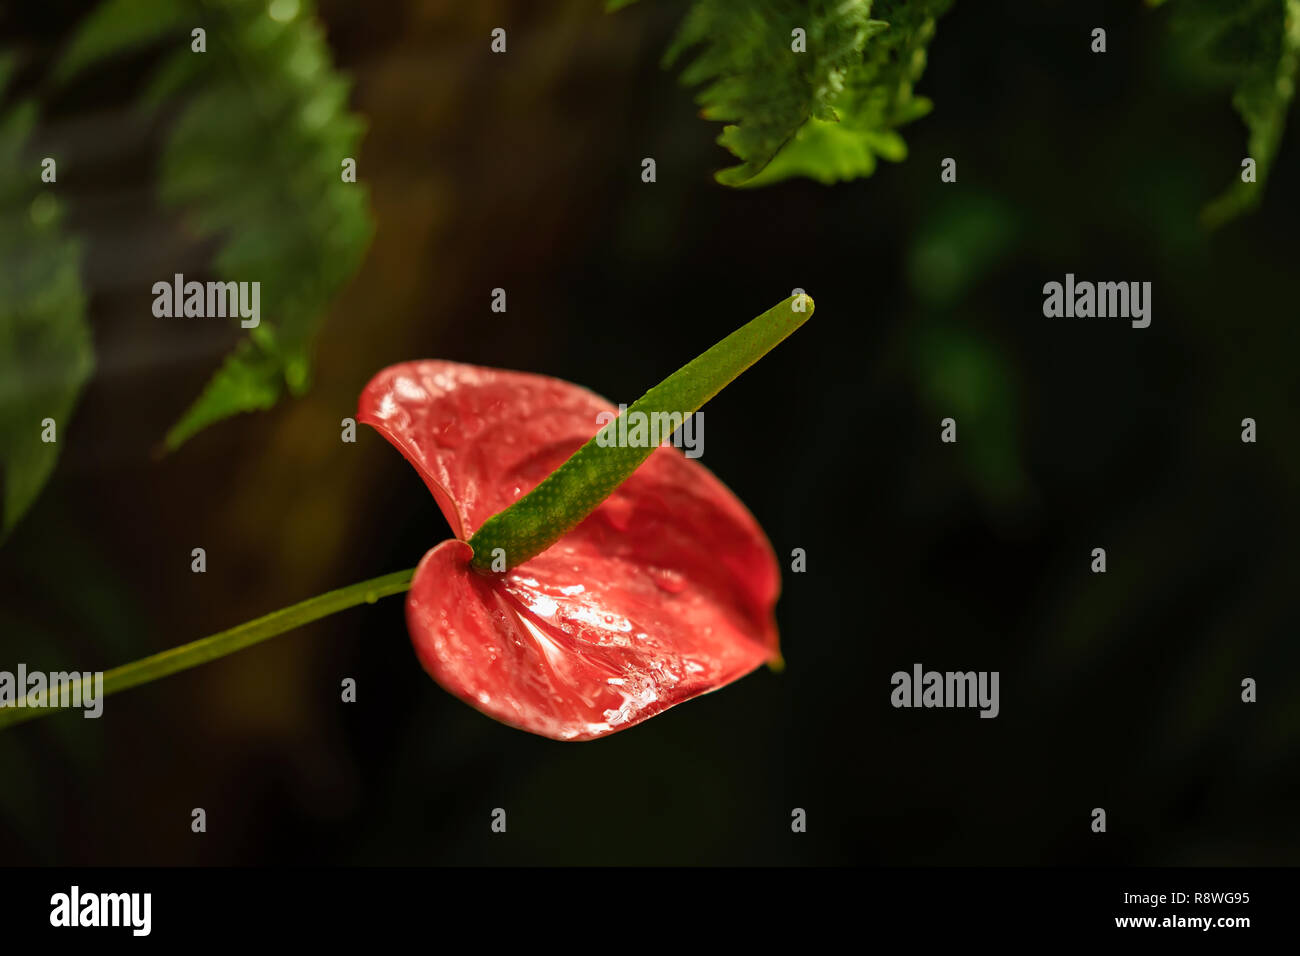 Showy flower of red anthurium close up on black background - Stock Image